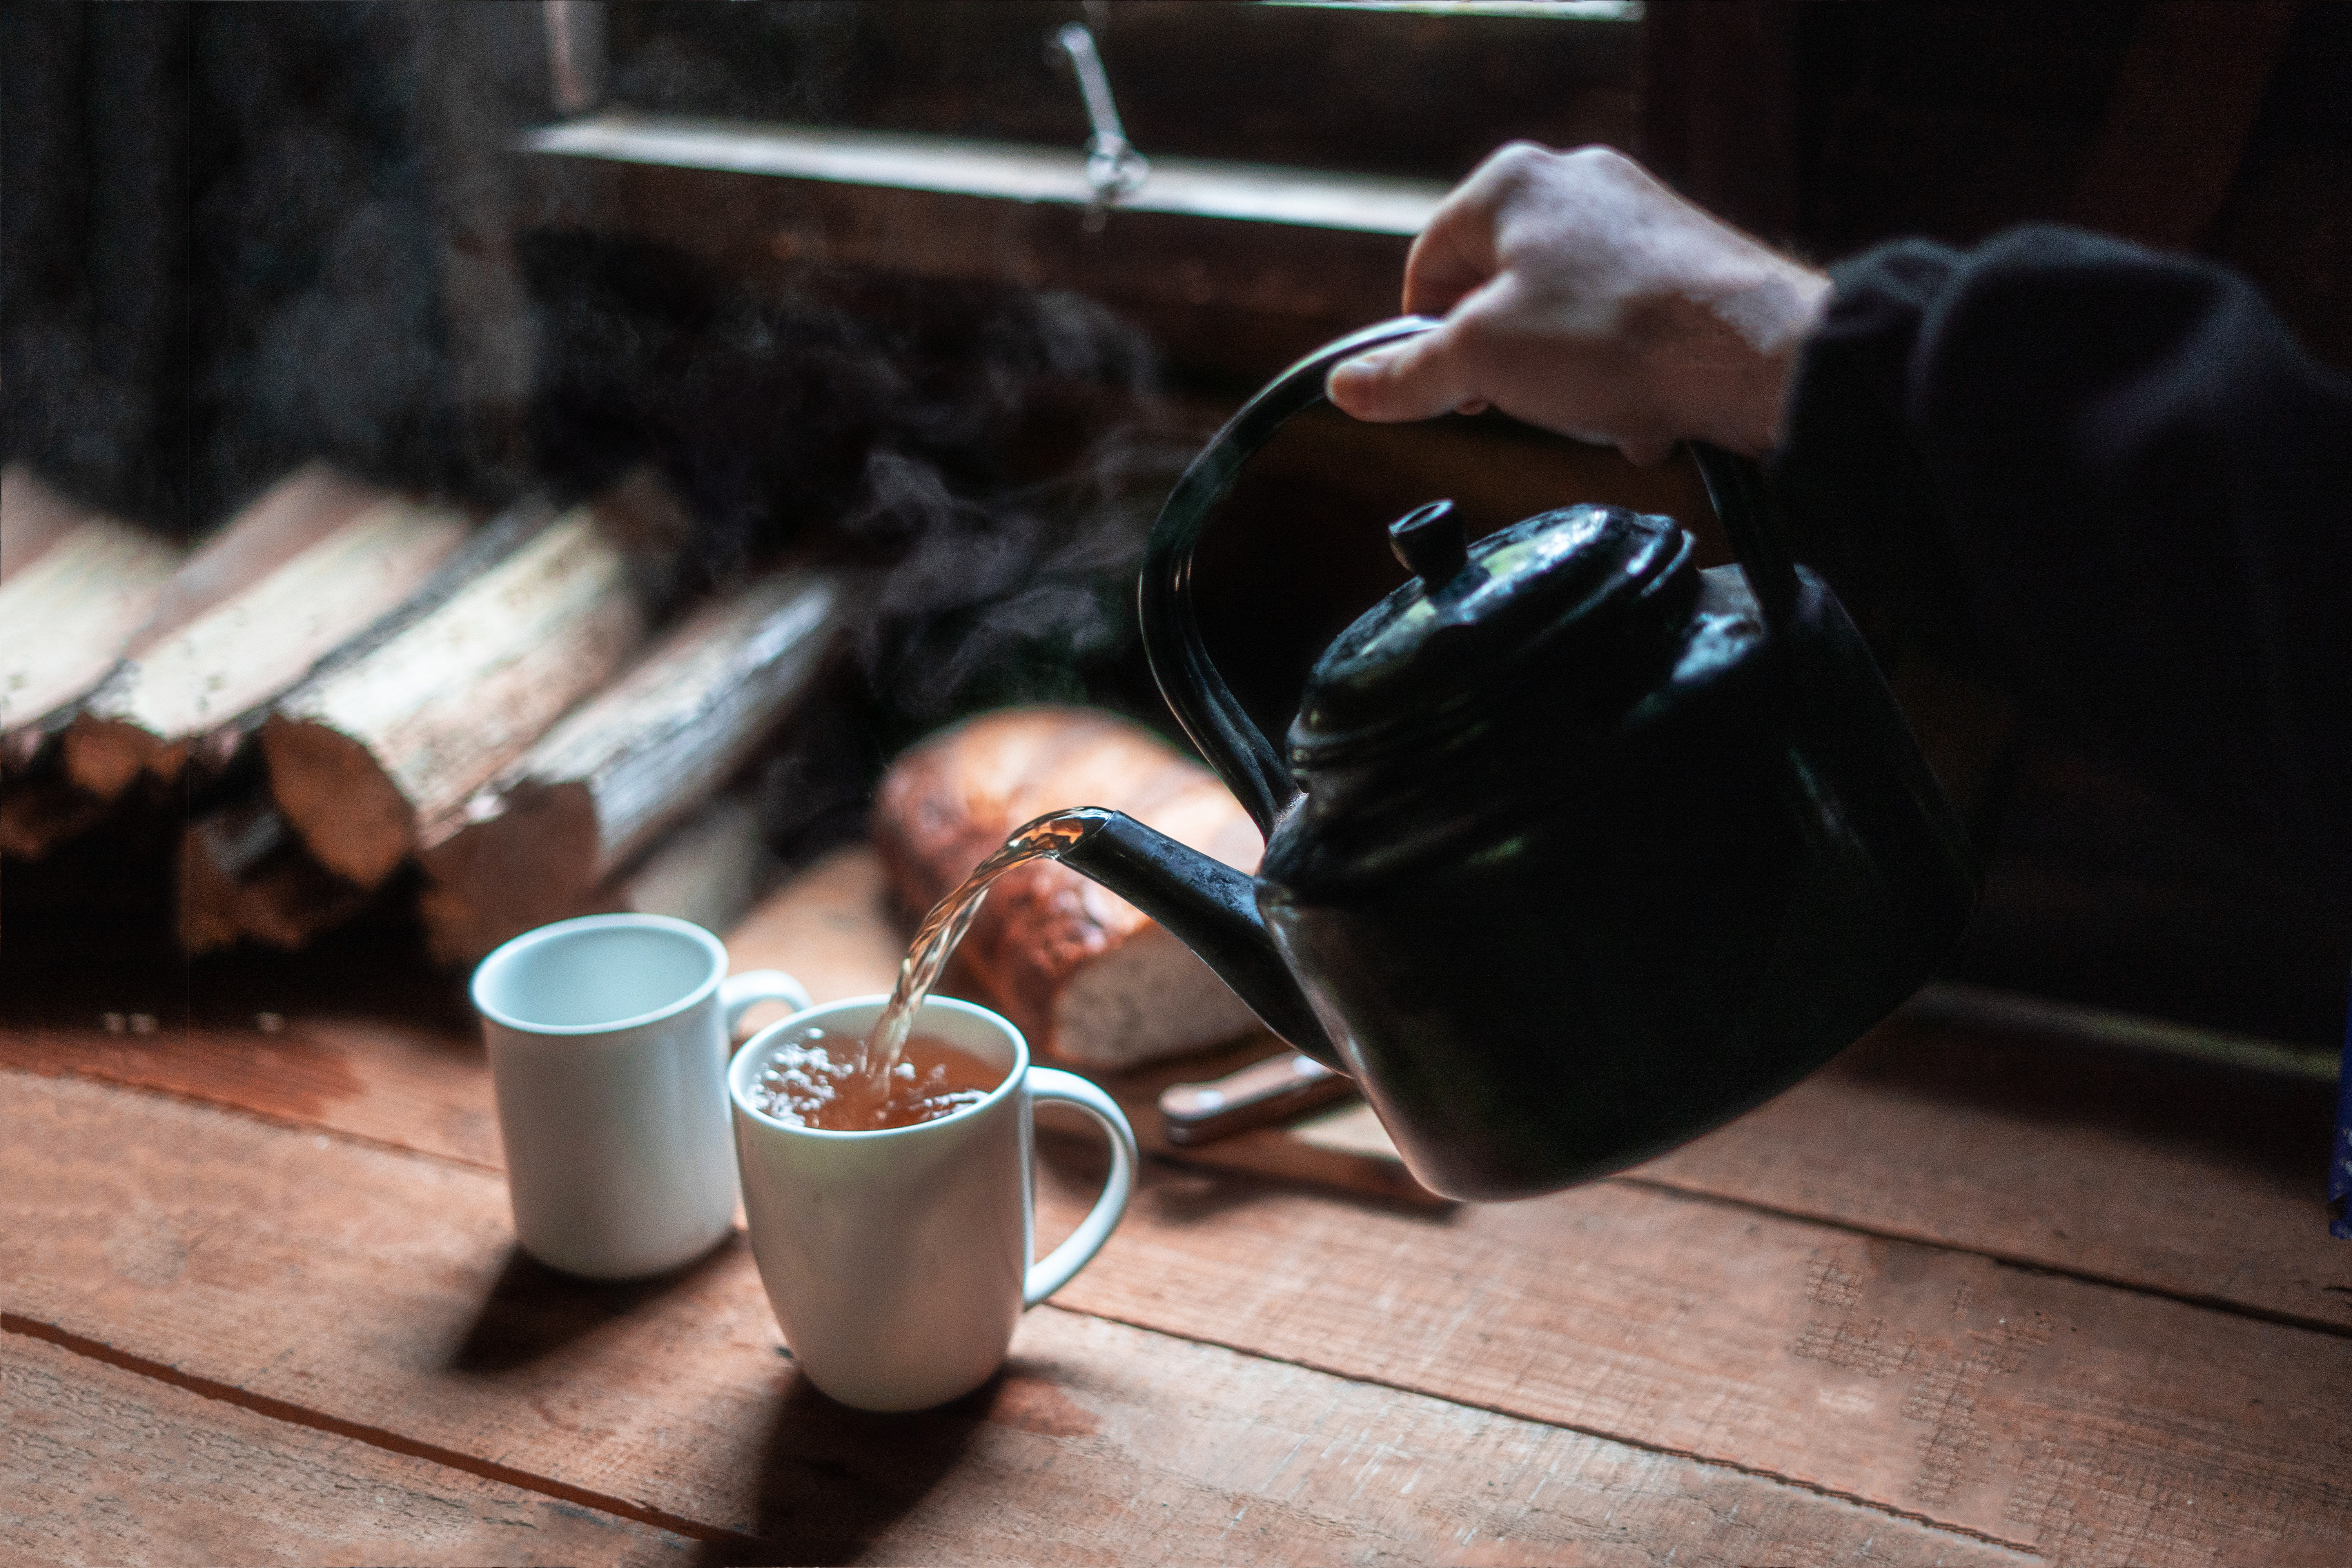 photo-of-person-pouring-hot-beverage-on-mug-3619784